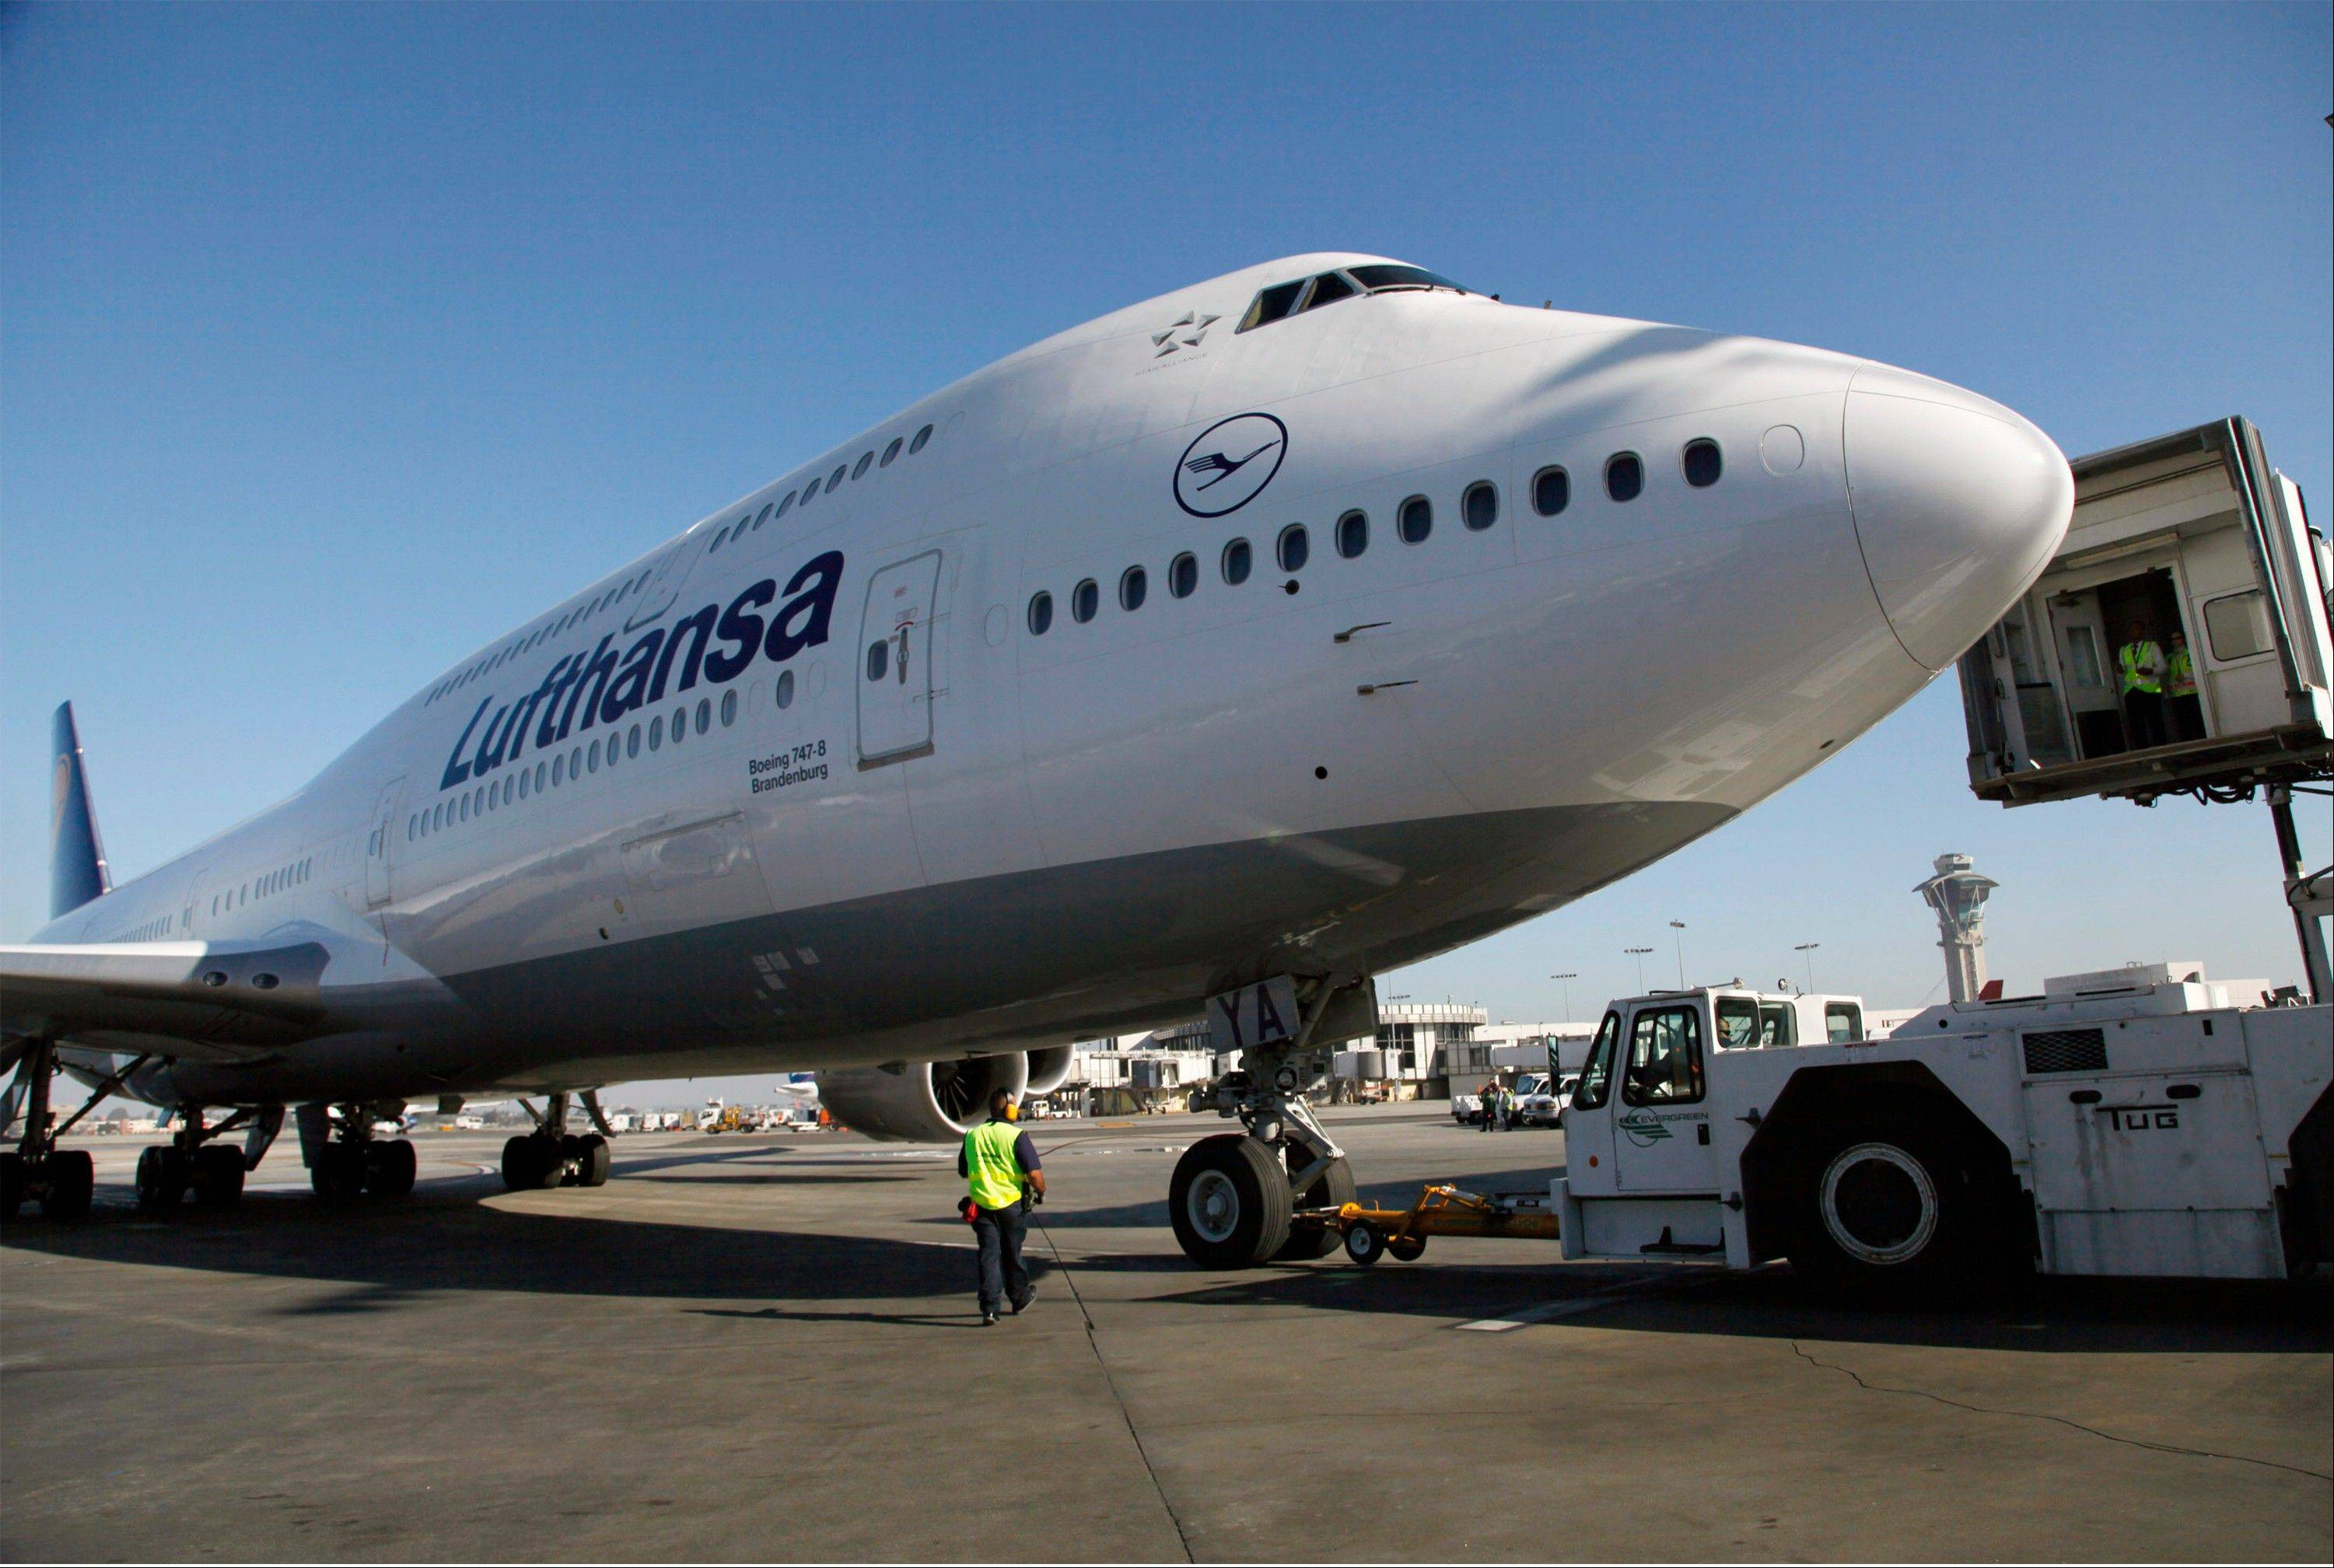 Lufthansa�s Boeing 747-8 Brandenburg aircraft arrives at Los Angeles International Airport, after its inaugural passenger flight from Frankfurt, Germany to Los Angeles.